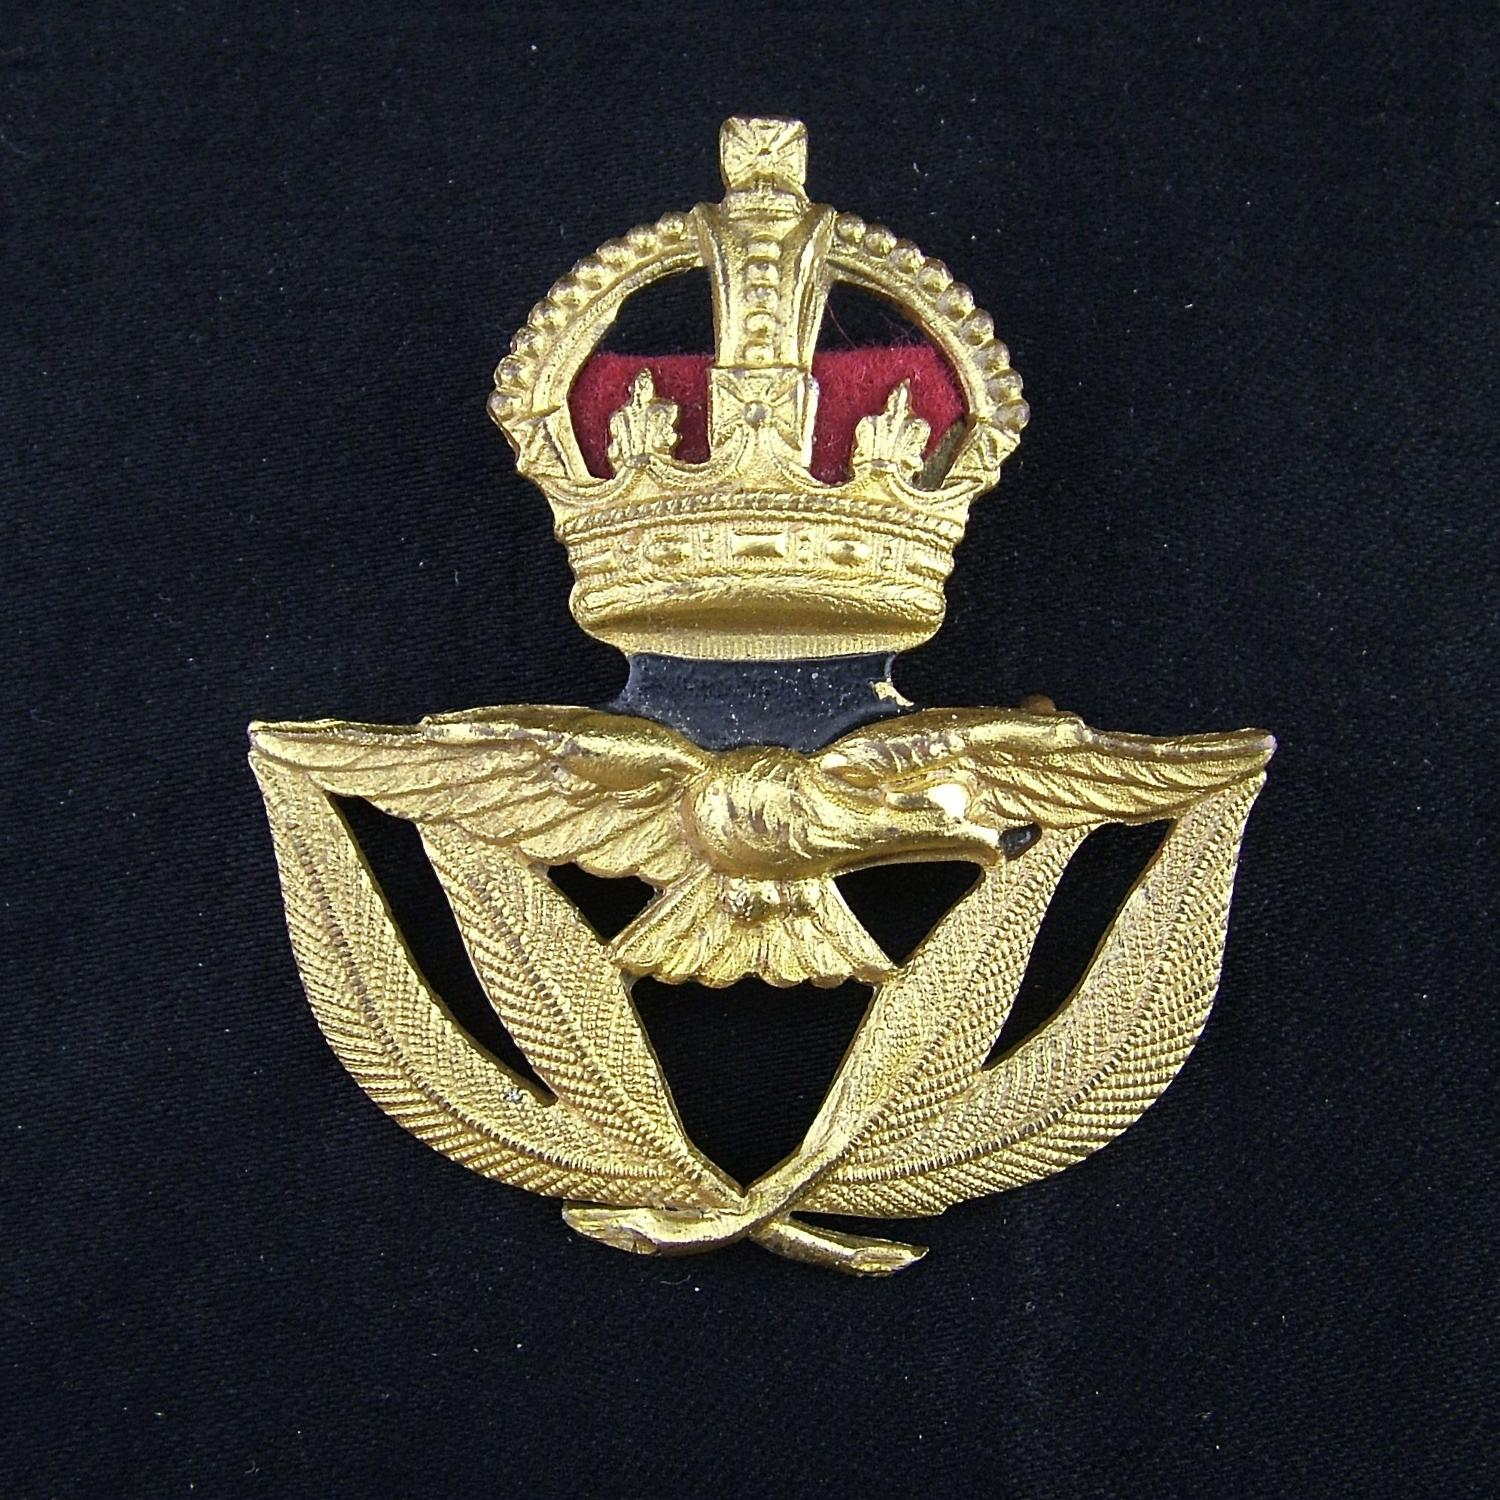 RAF warrant officers' cap badge